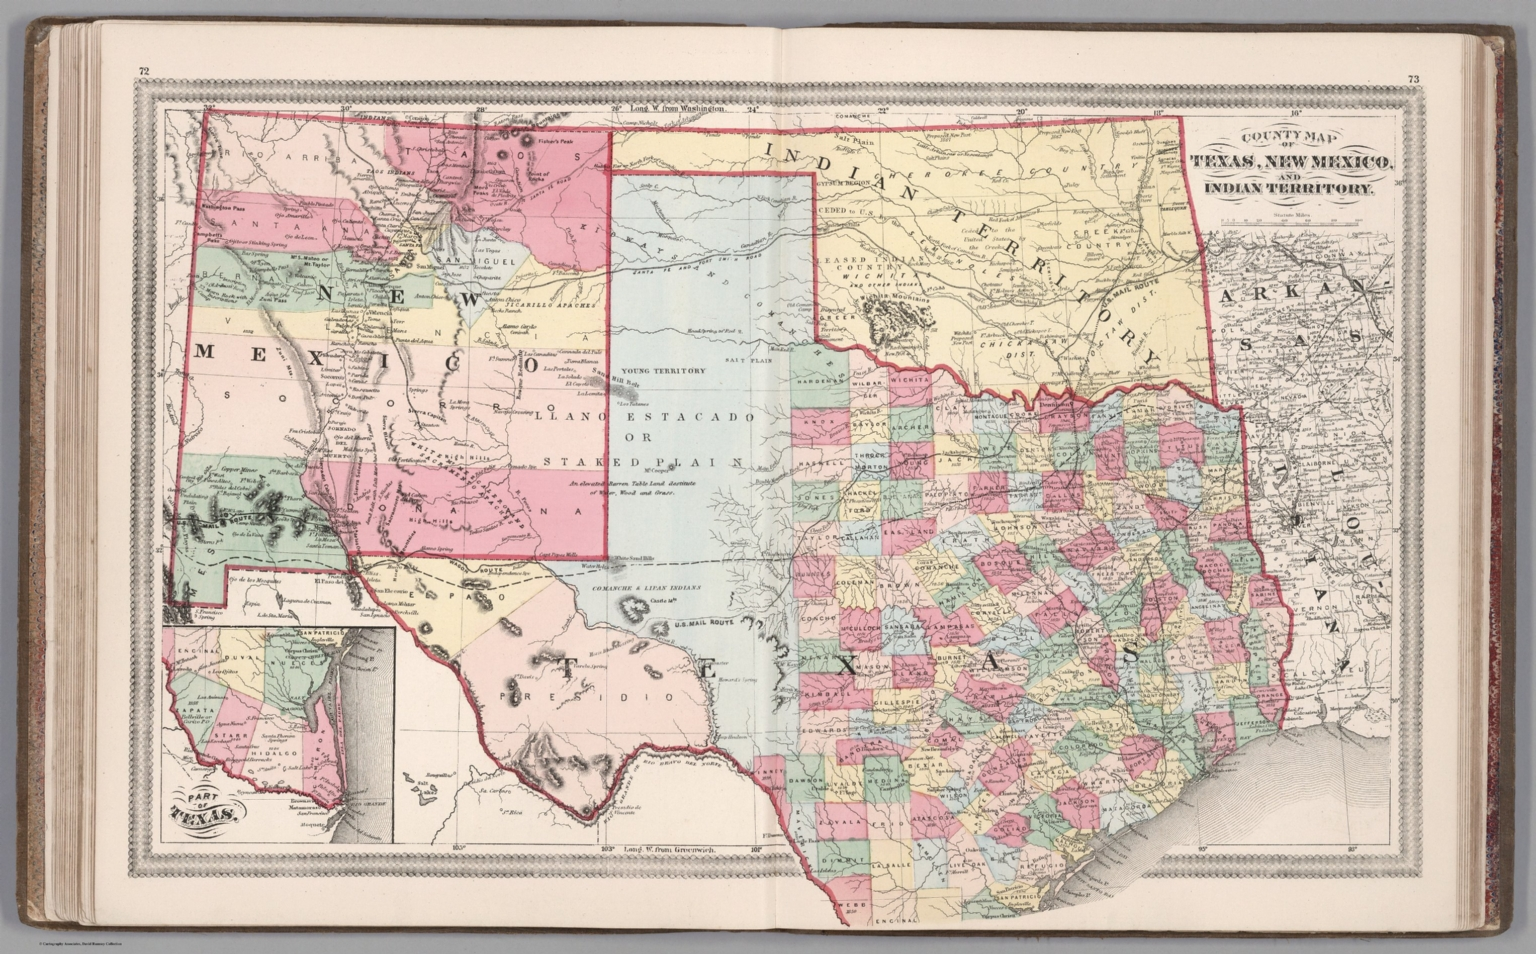 Map Of Texas New Mexico.County Map Of Texas New Mexico And Indian Territory David Rumsey